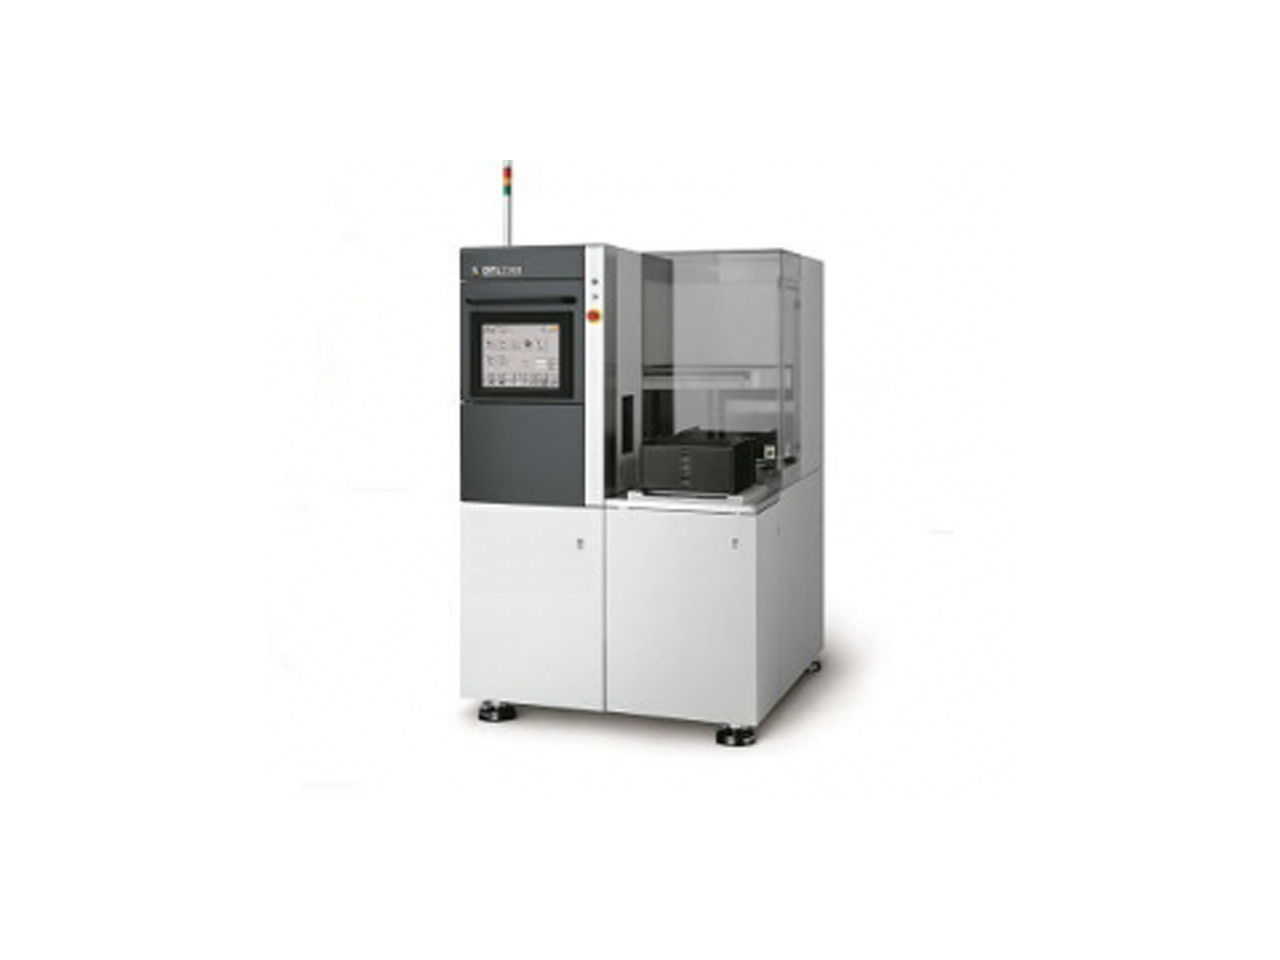 Semiconductor Equipment Manufacturing, Inc